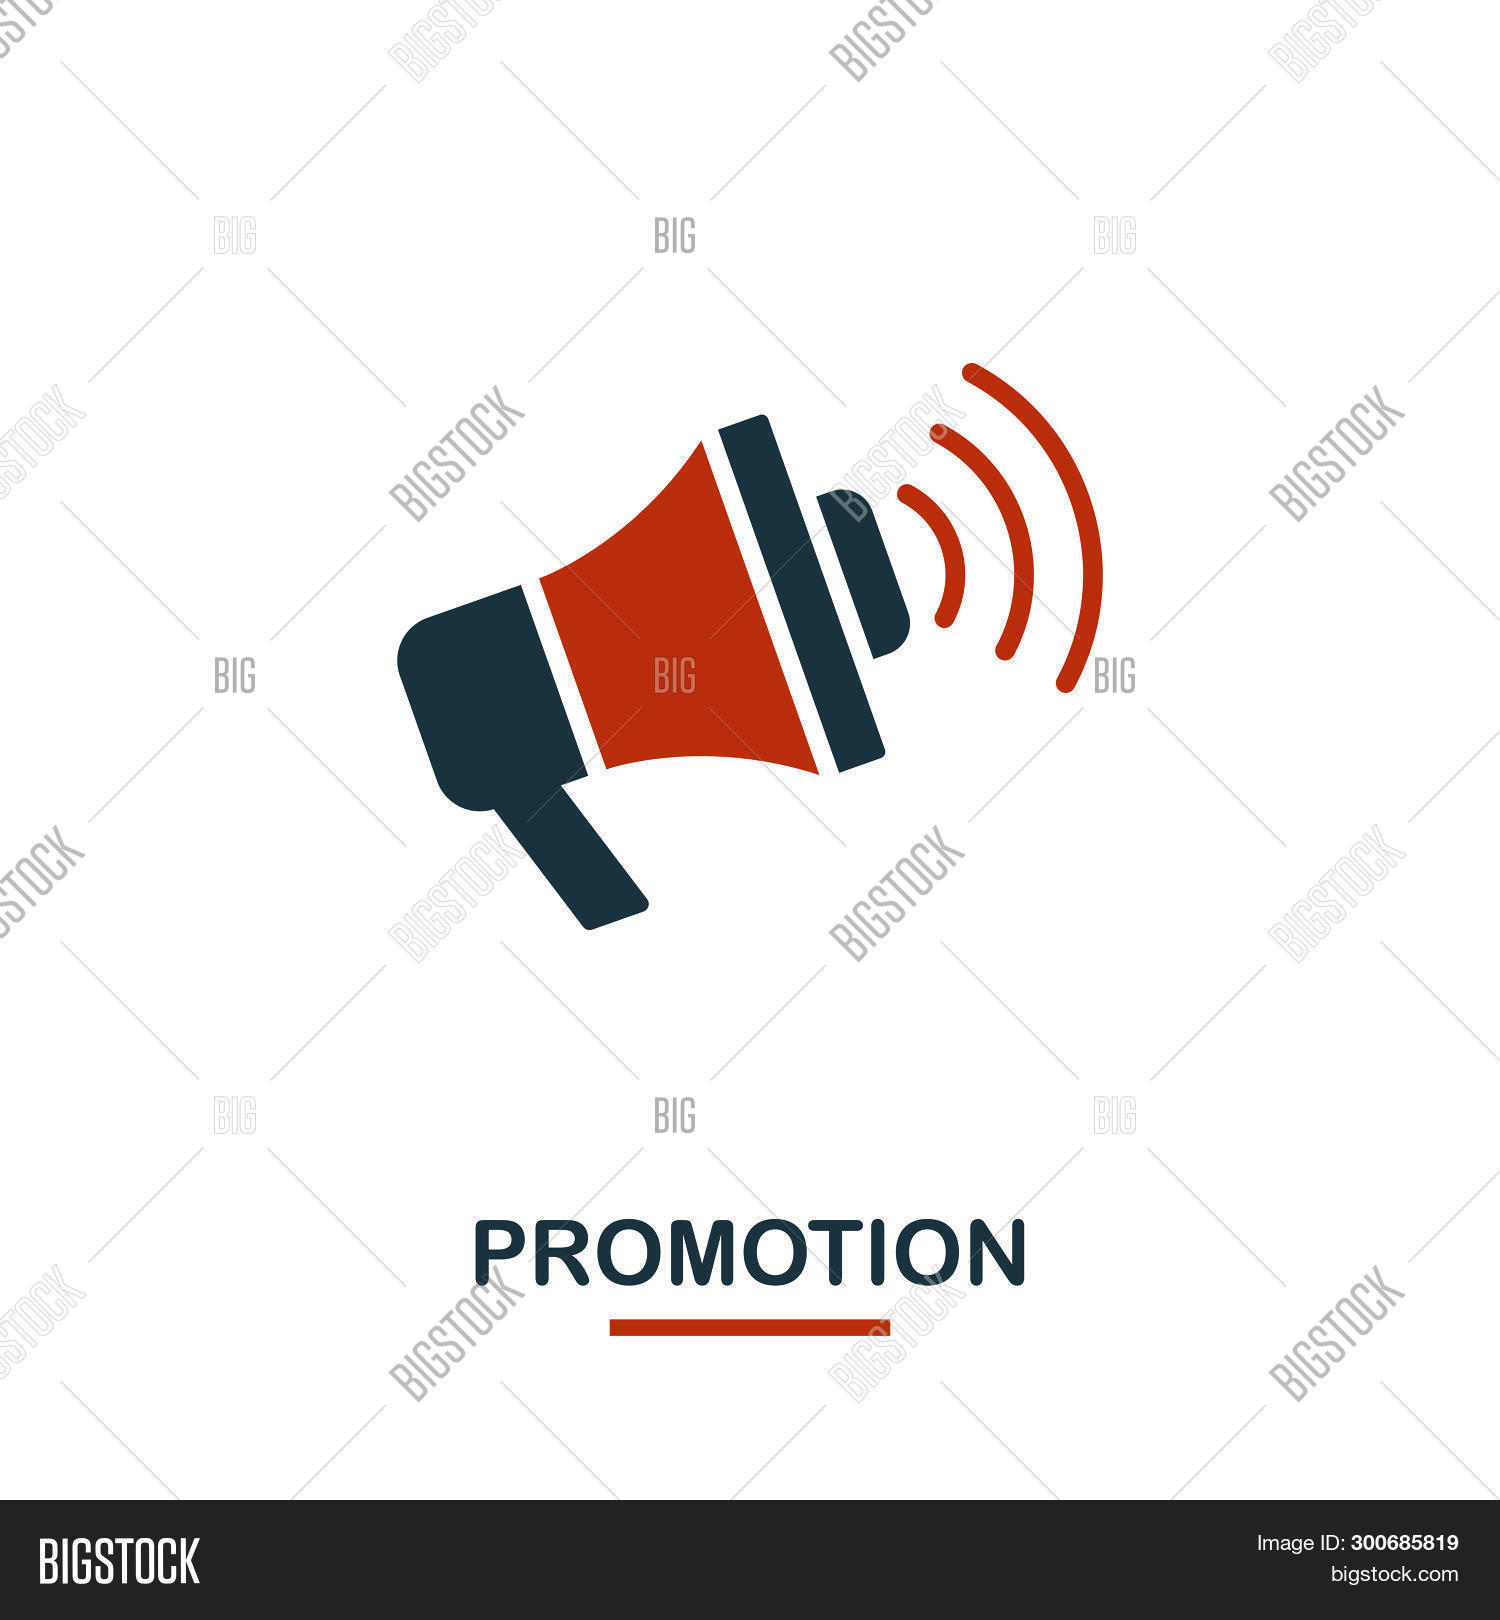 promotion icon two image